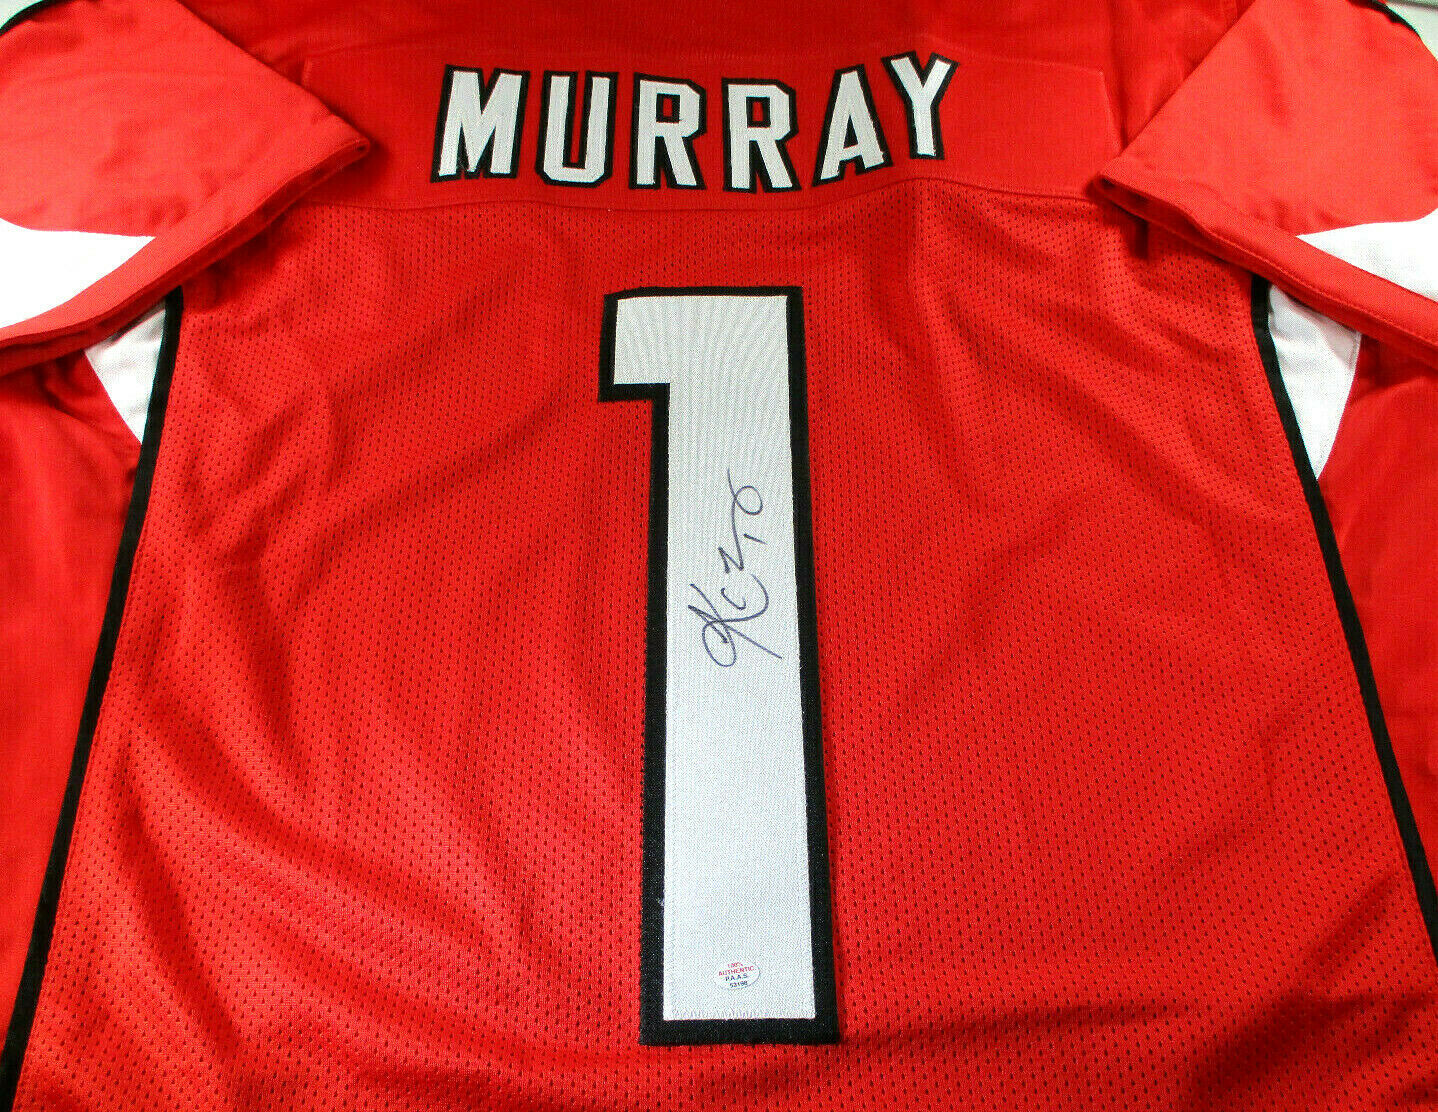 KLYER MURRAY / ARIZONA CARDINALS QB / AUTOGRAPHED CARDINALS CUSTOM JERSEY / COA